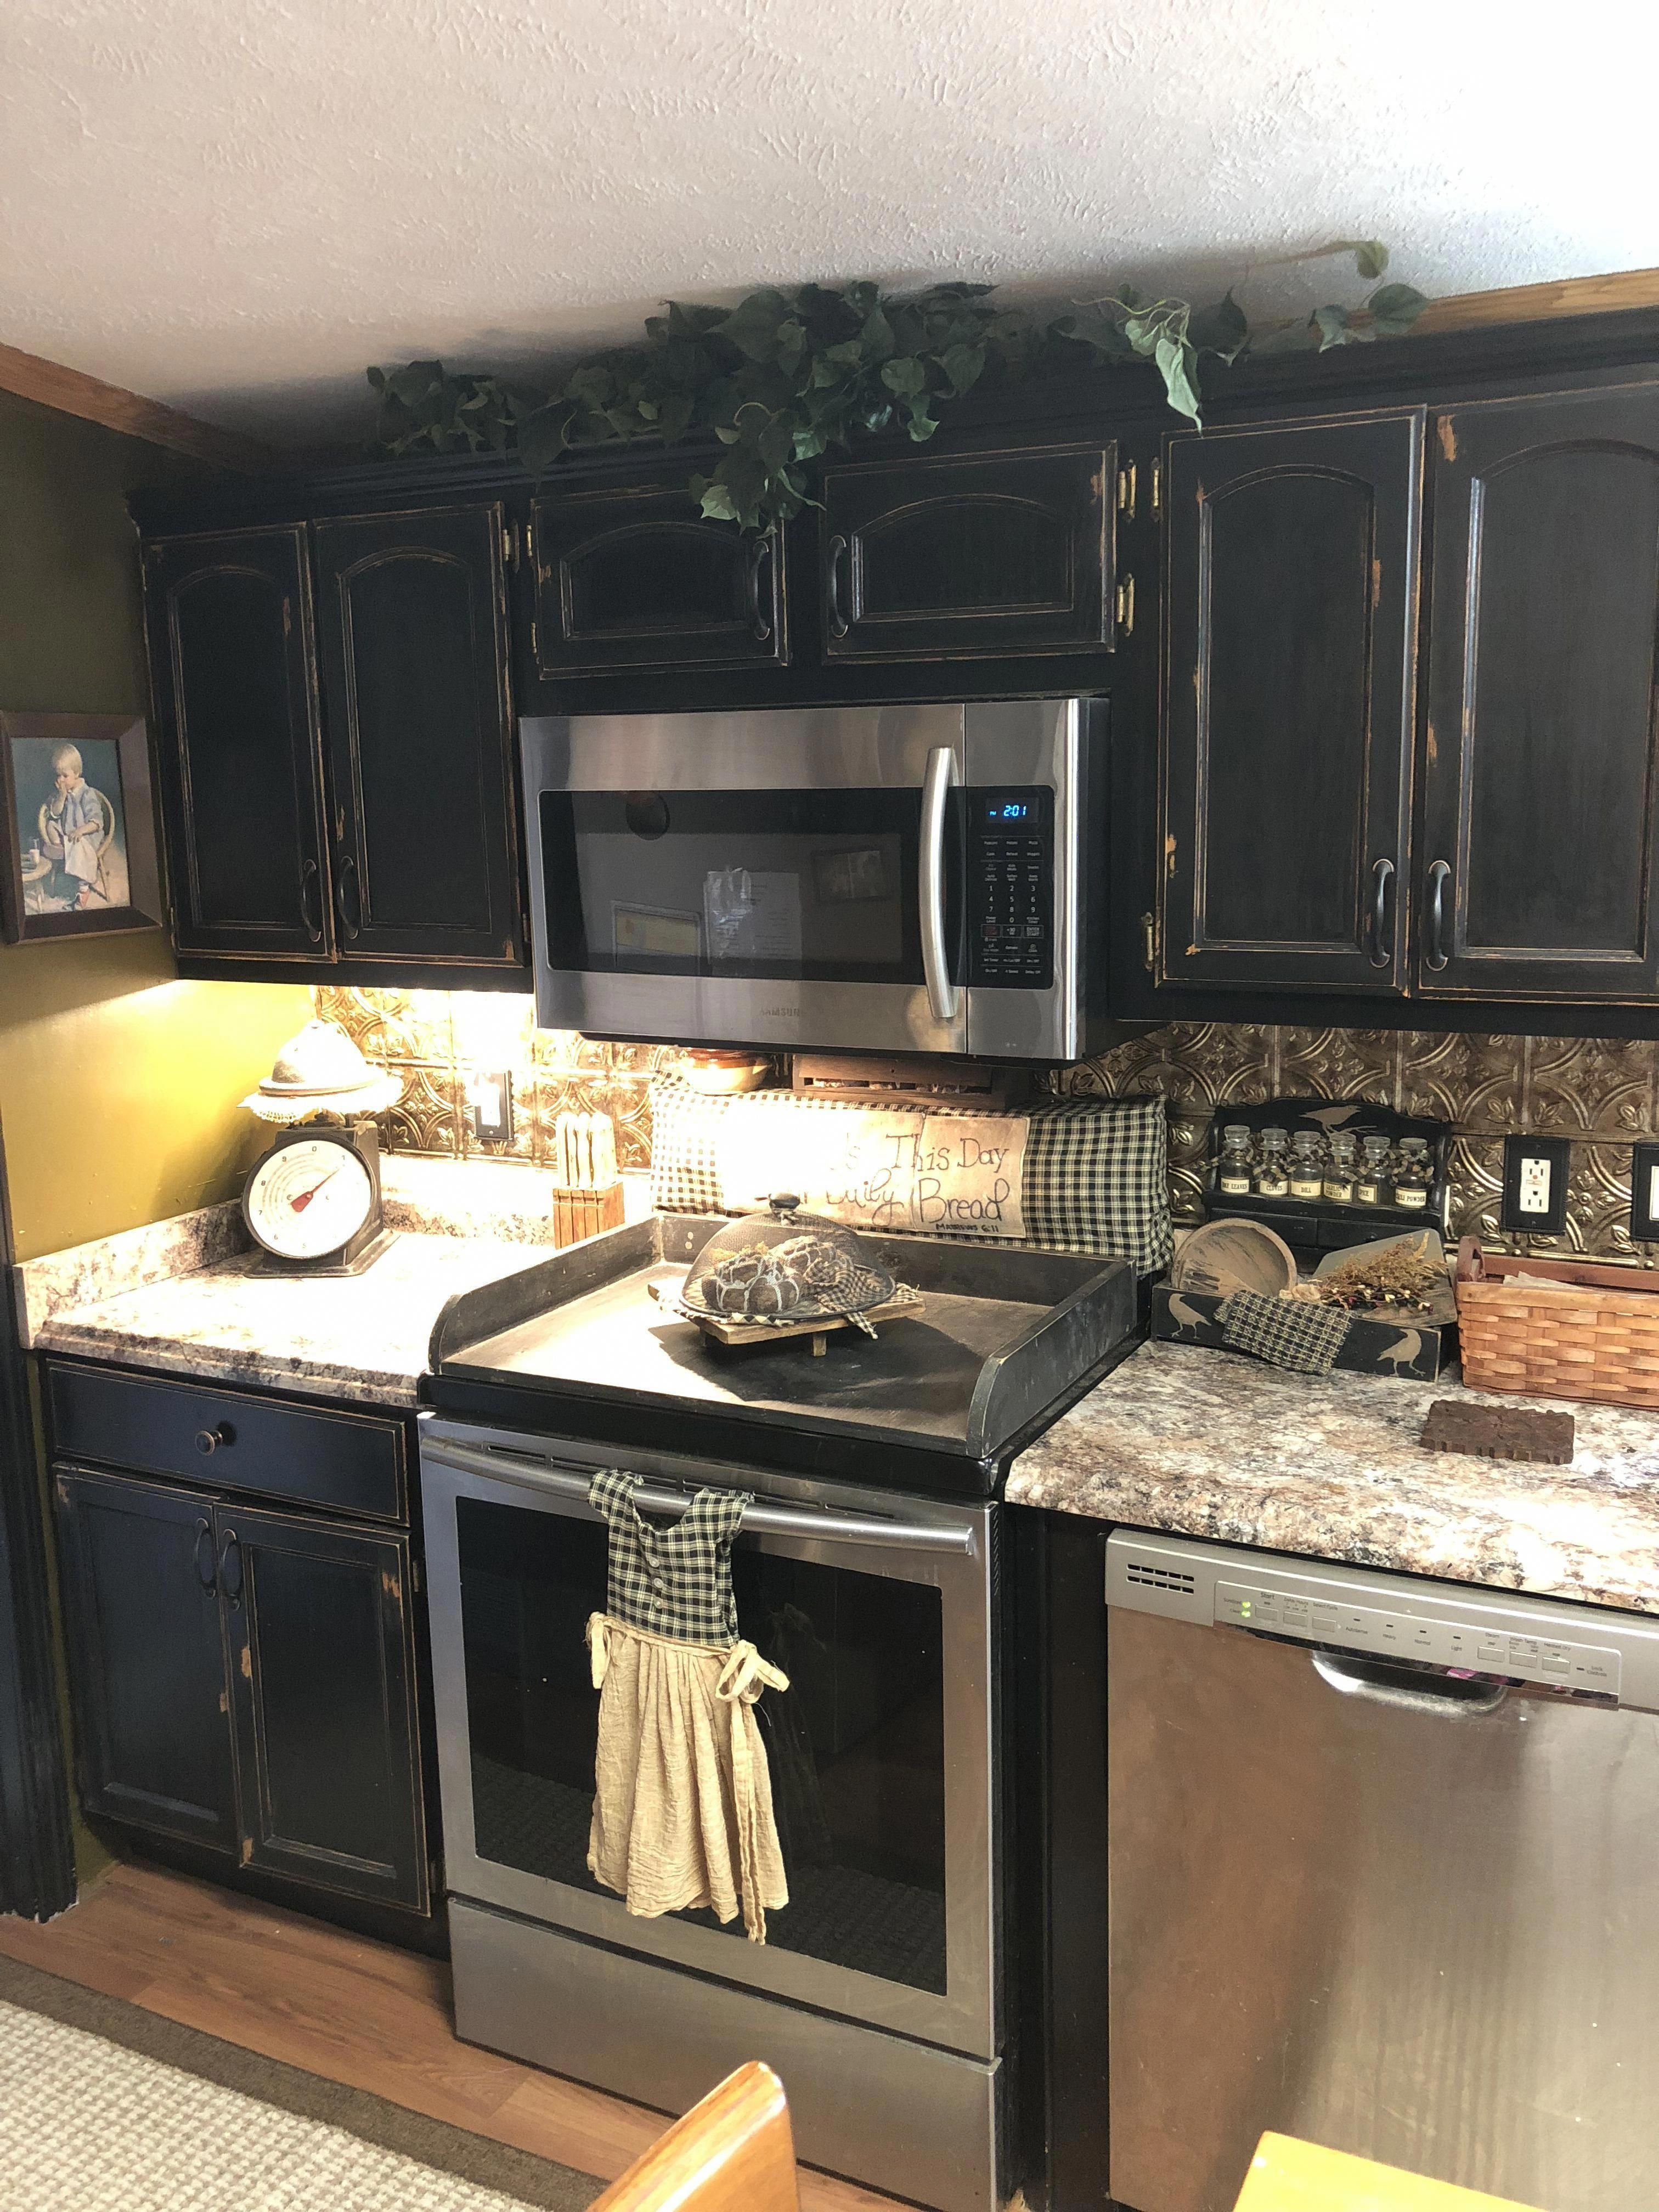 Black Cabinets Primitive Style Country Countryprimitive Primitivecountrydecorating Primitive Kitchen Cabinets Primitive Kitchen Decor Primitive Kitchen